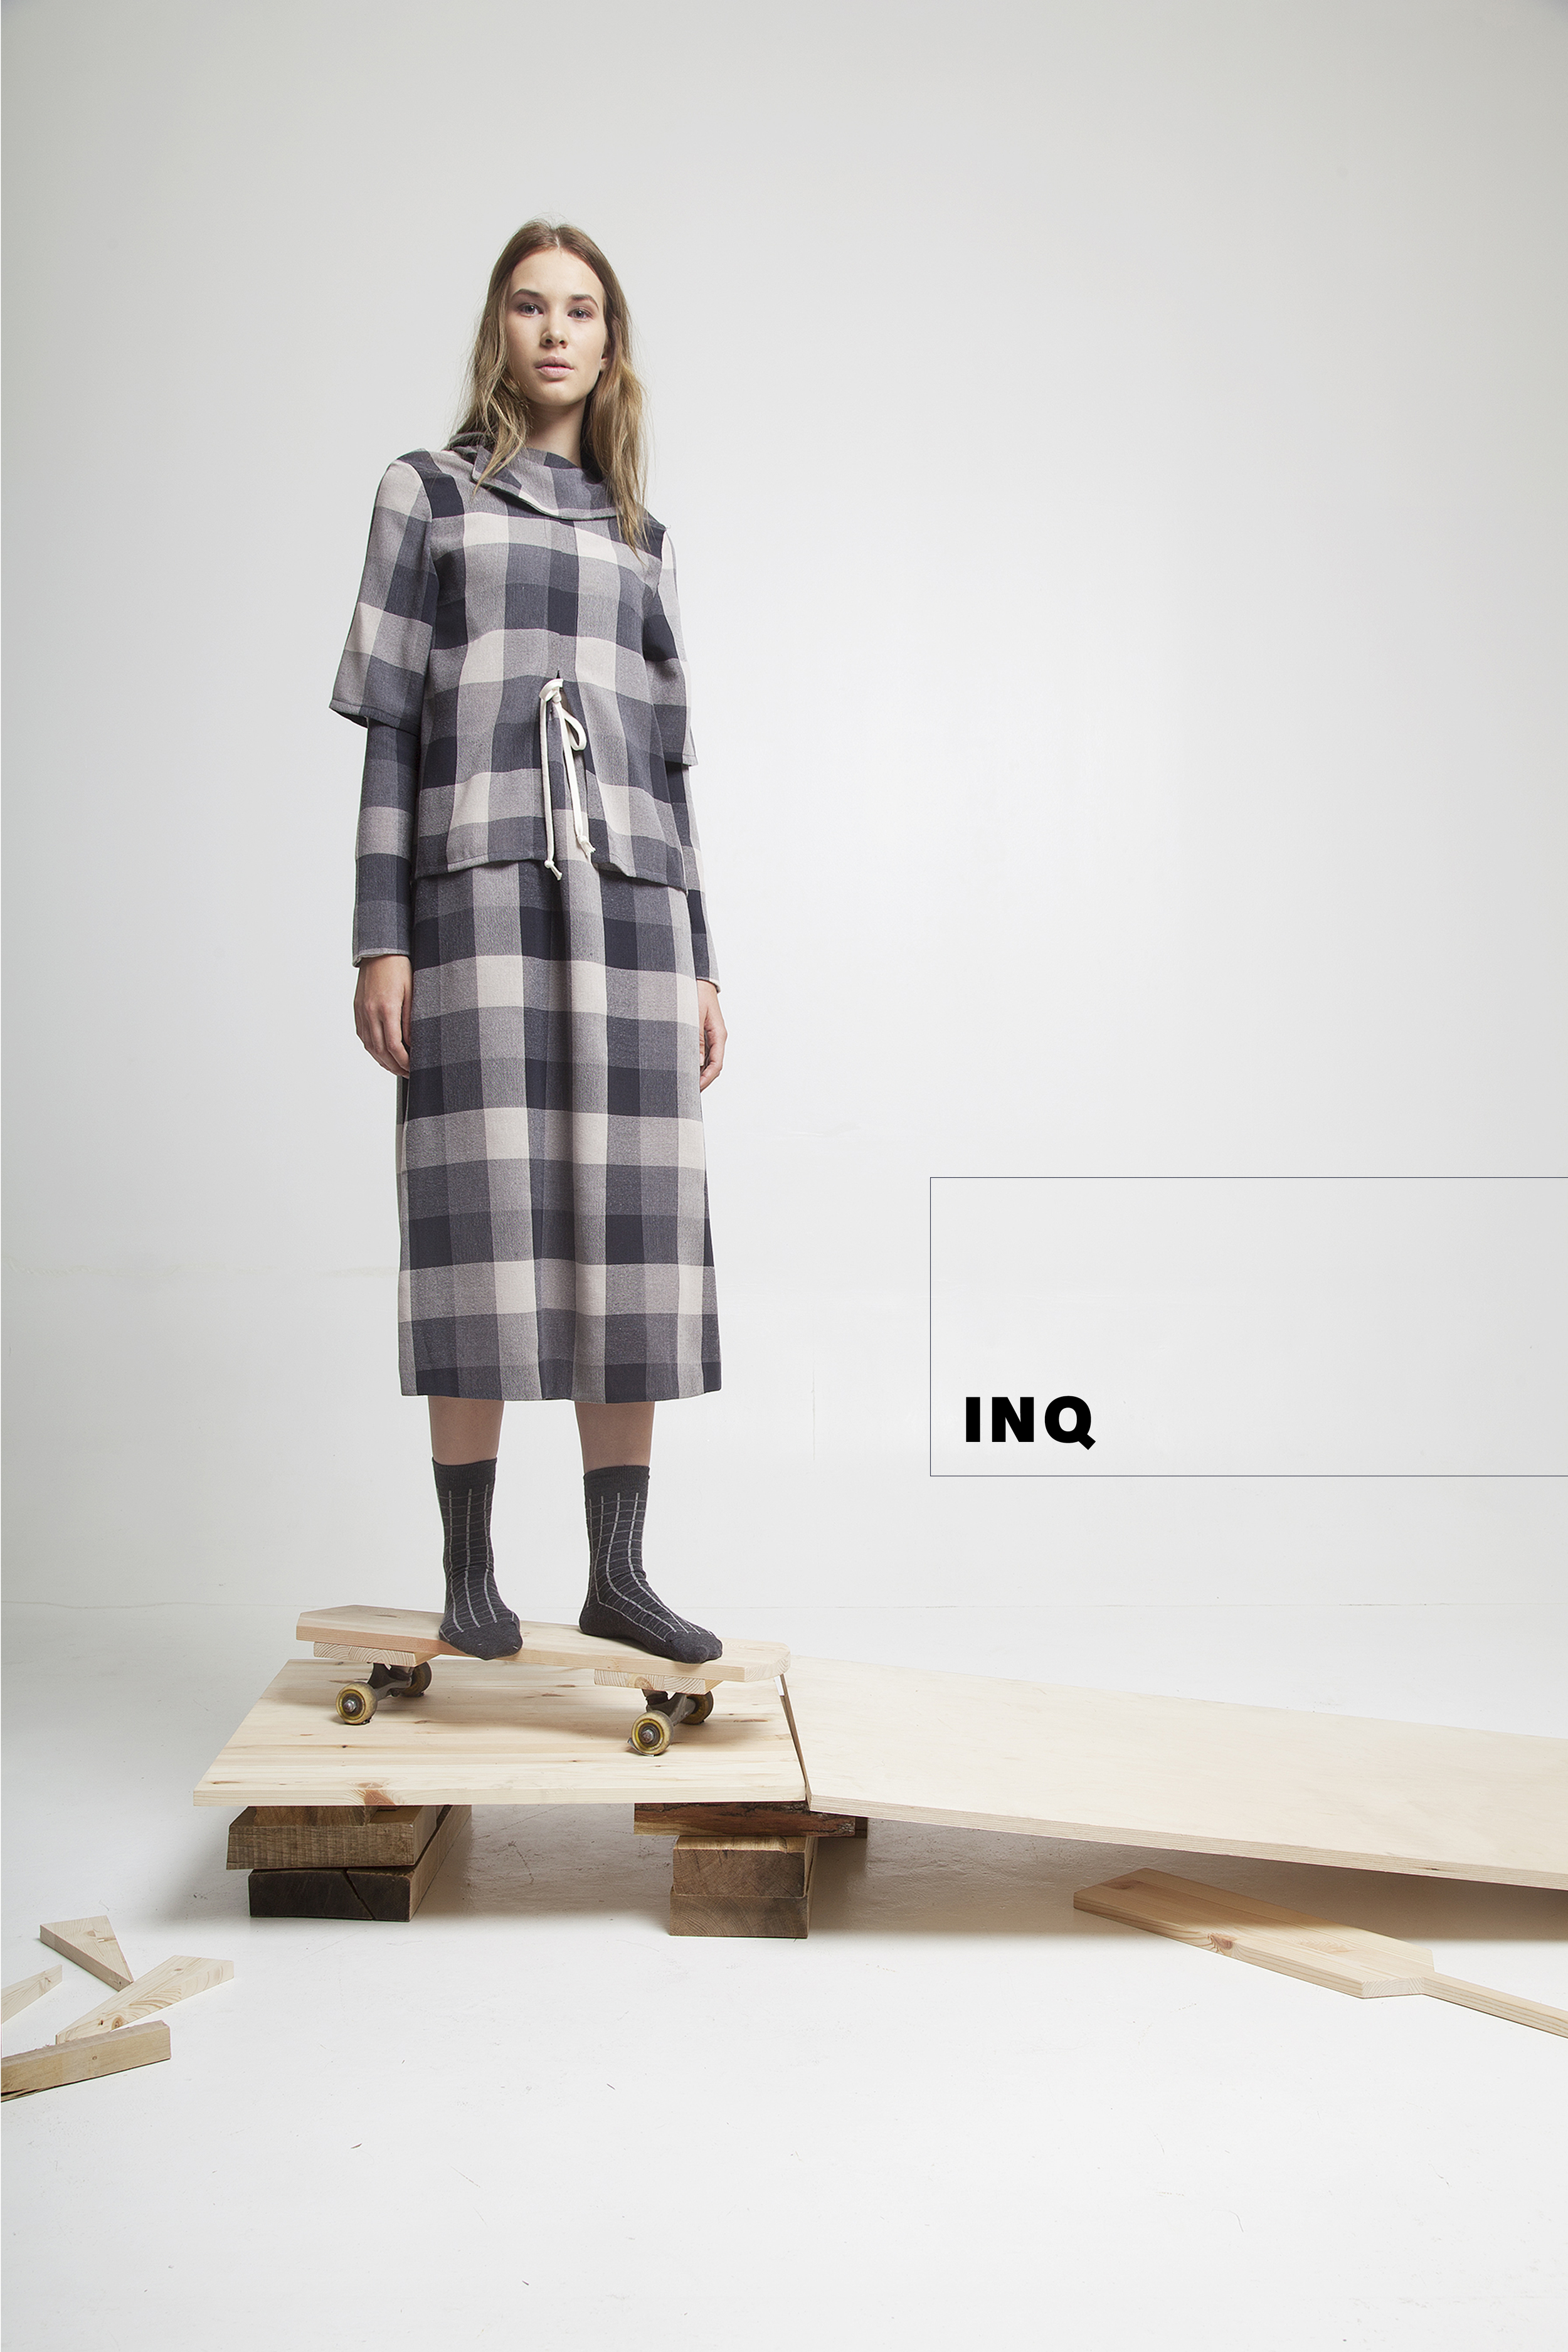 INQ concept_AW14_womenclothing_model Laura_photo by Mate Moro_hair and makeup by HAVE Salon_4.jpg